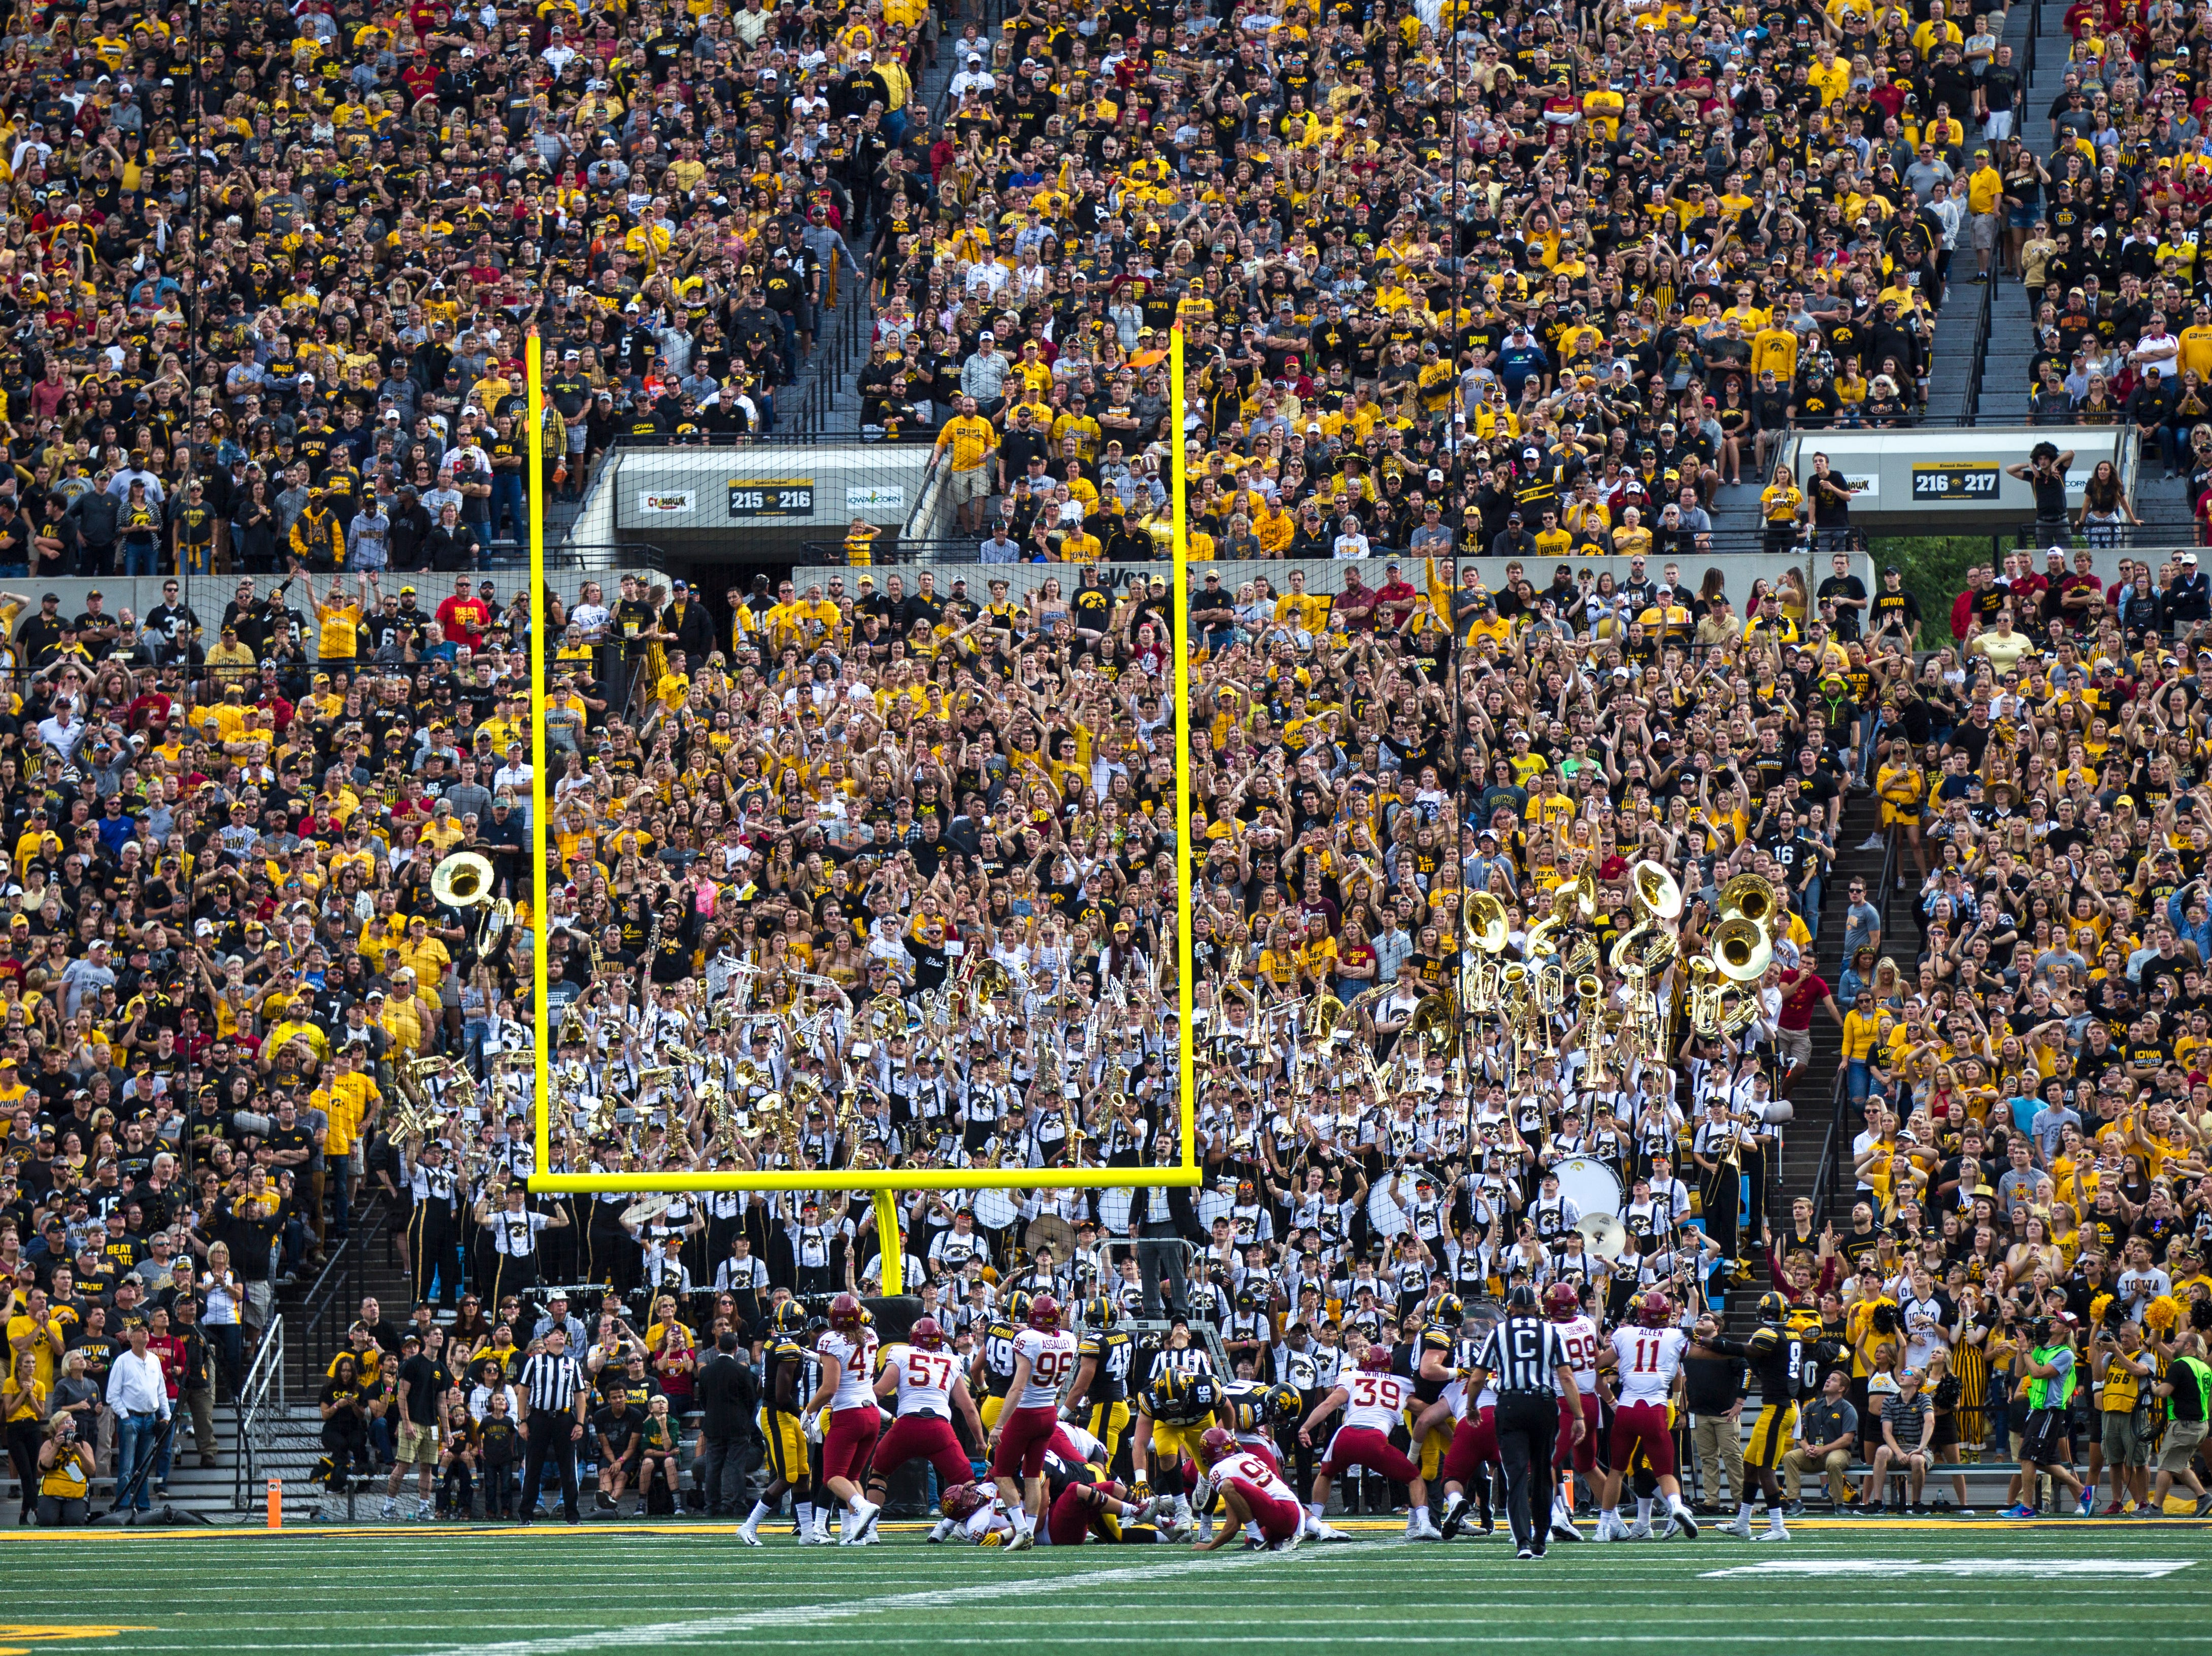 Iowa State place kicker Connor Assalley (96) watches as his field goal goes through the up rights during the Cy-Hawk NCAA football game on Saturday, Sept. 8, 2018, at Kinnick Stadium in Iowa City.